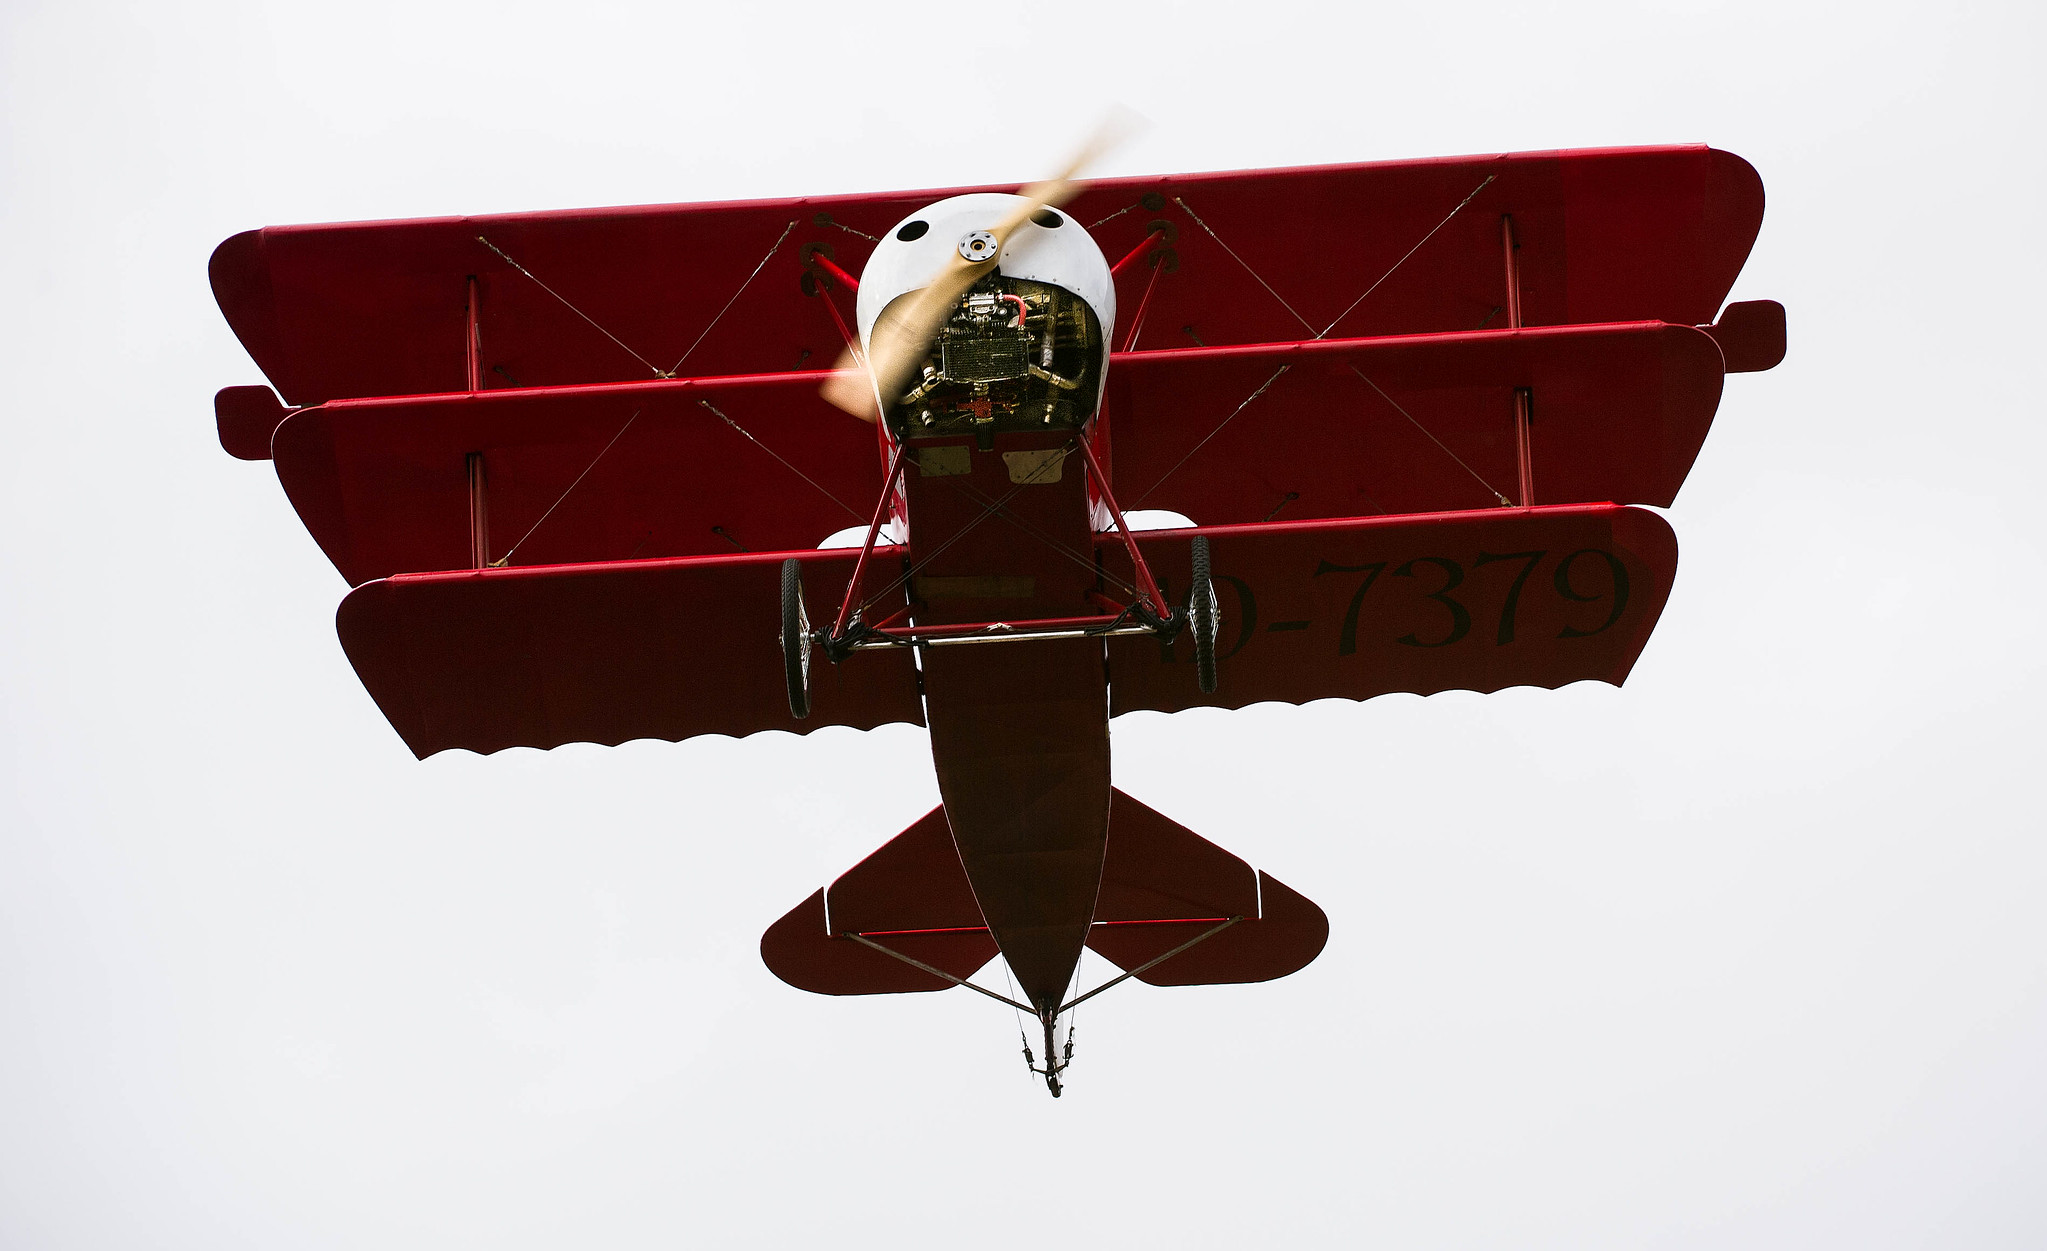 The Many Final Flights Of Germany's Fearsome WWI Fighter Pilot 'Red Baron'